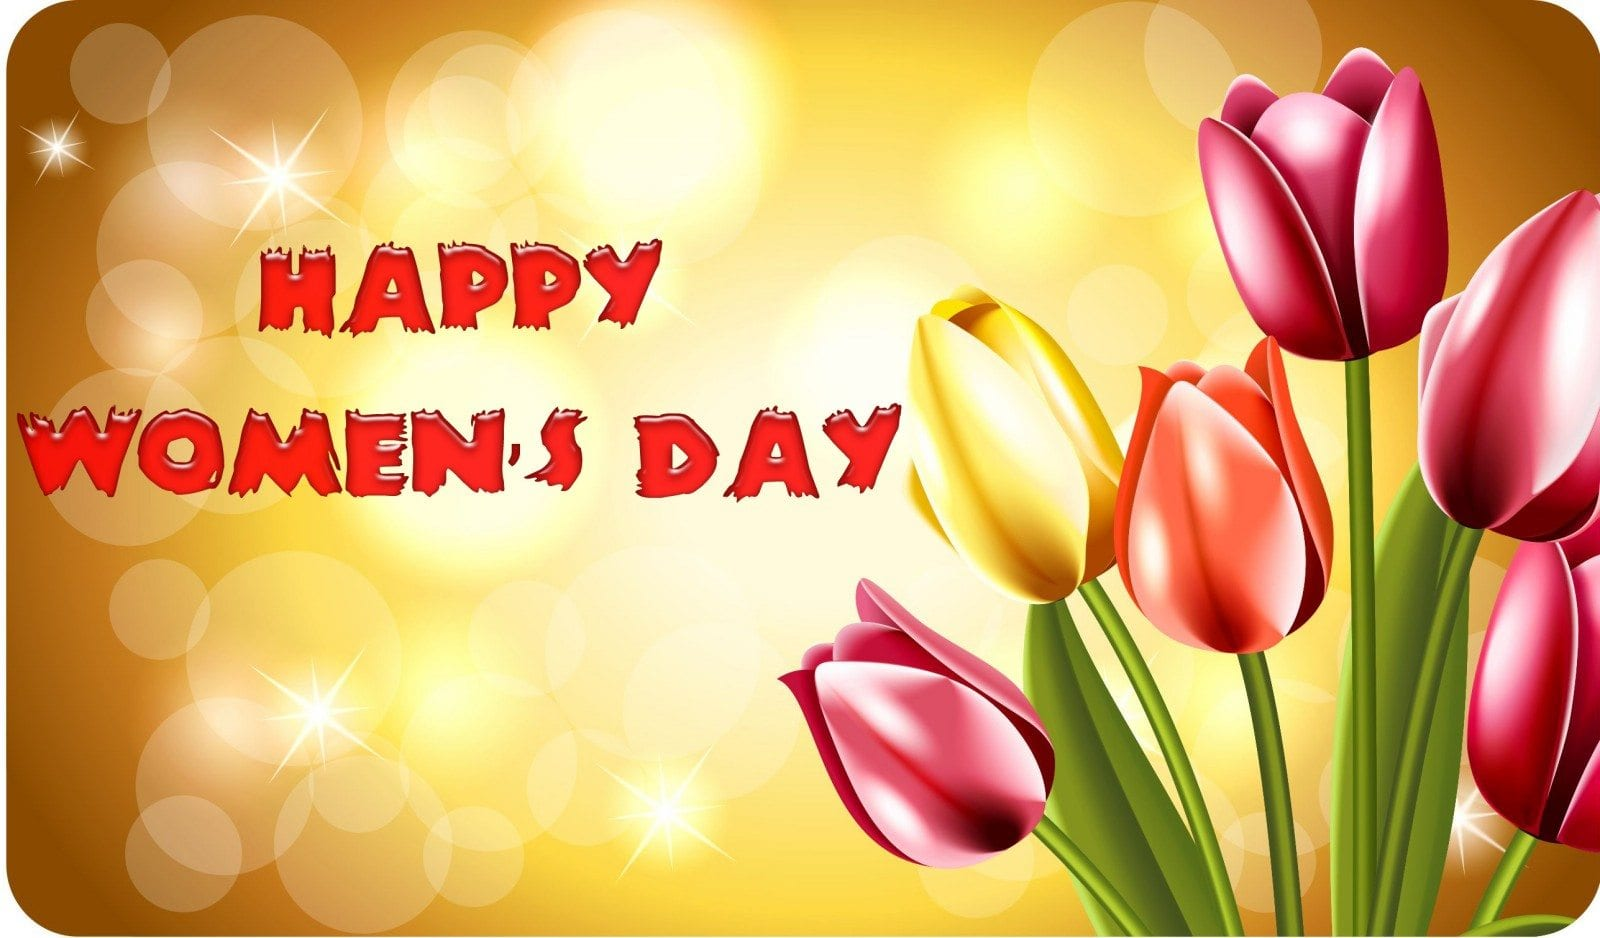 Happy-Womens-Day.-Most-Exclusive-Card-B